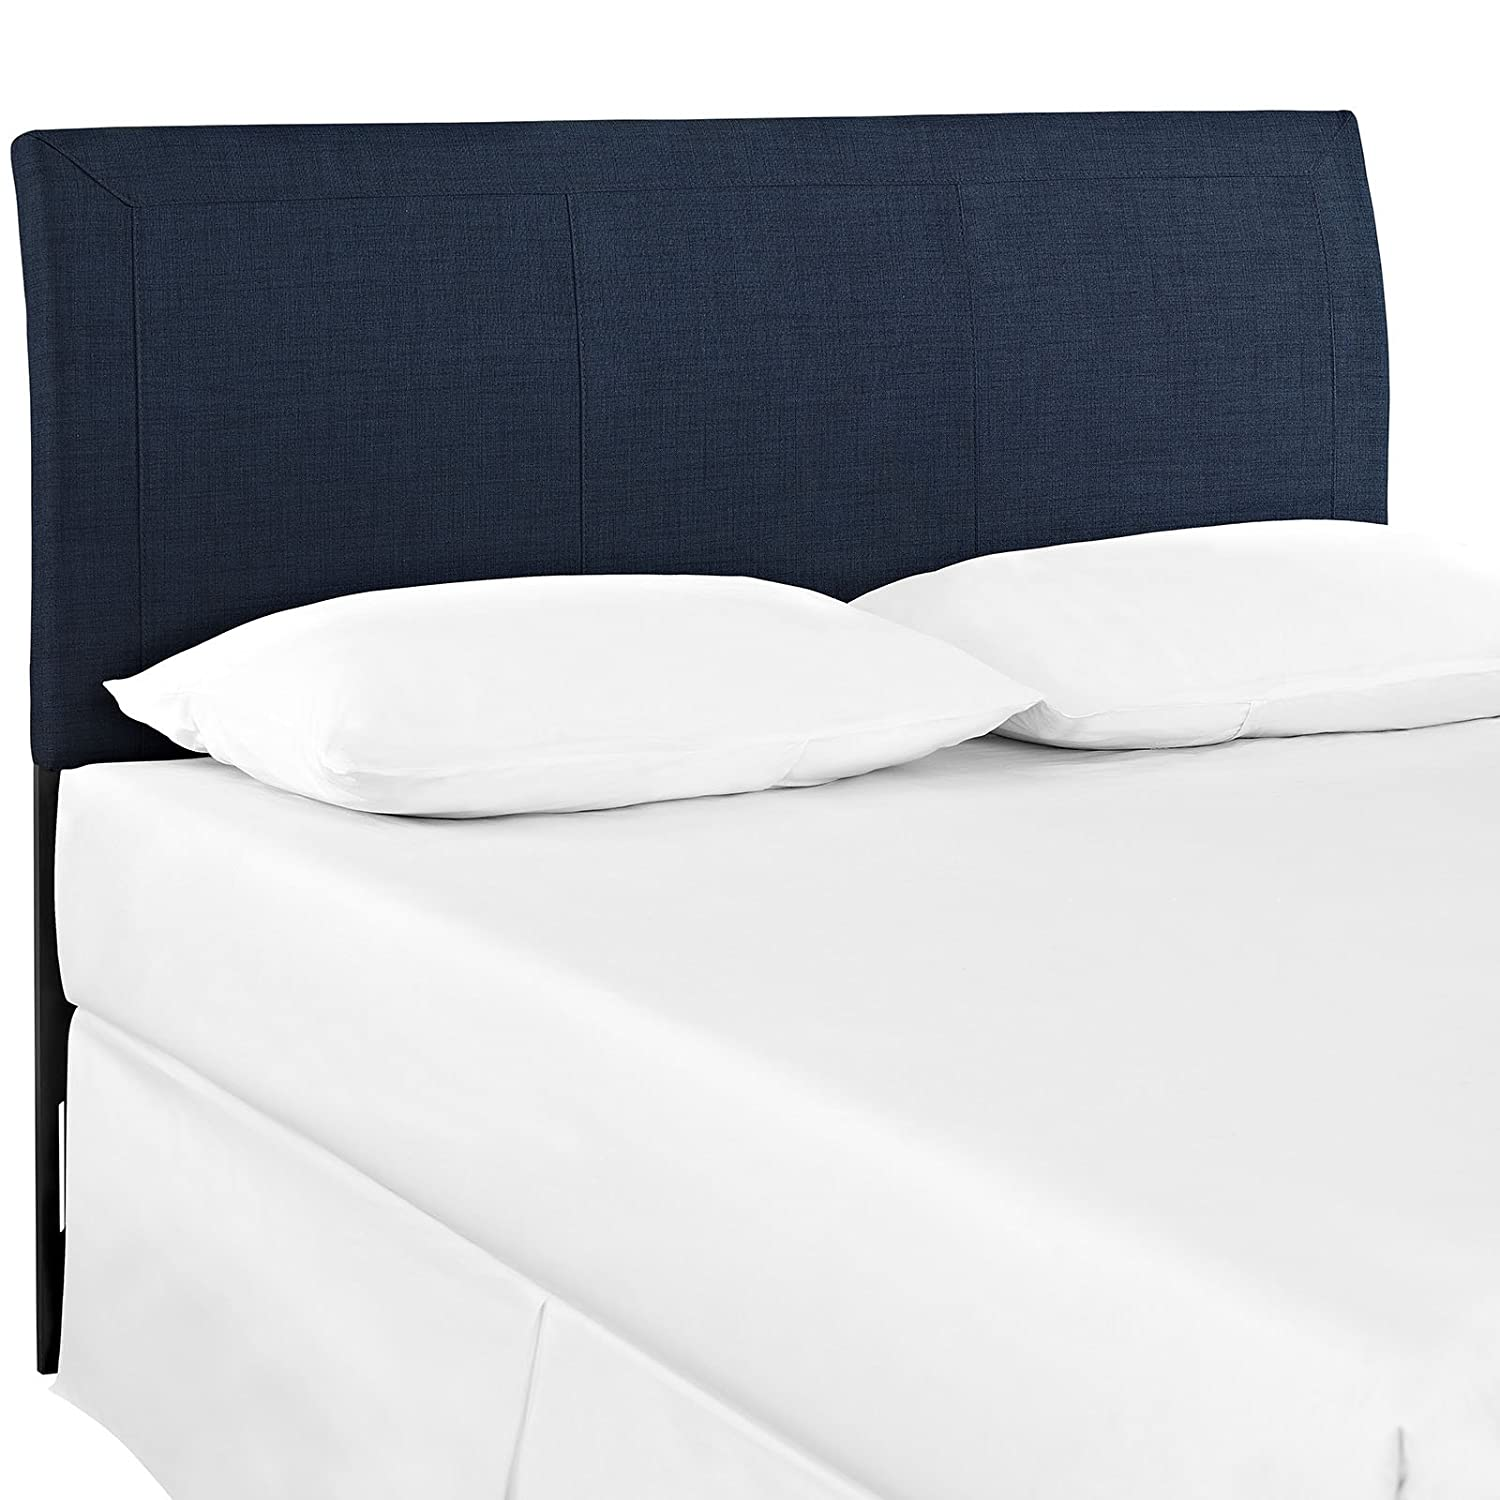 diy navy queen headboard blue blu frame upholstered amys office previous dot style headboards station favorite innovative padded ga in beautified size image interesting bed